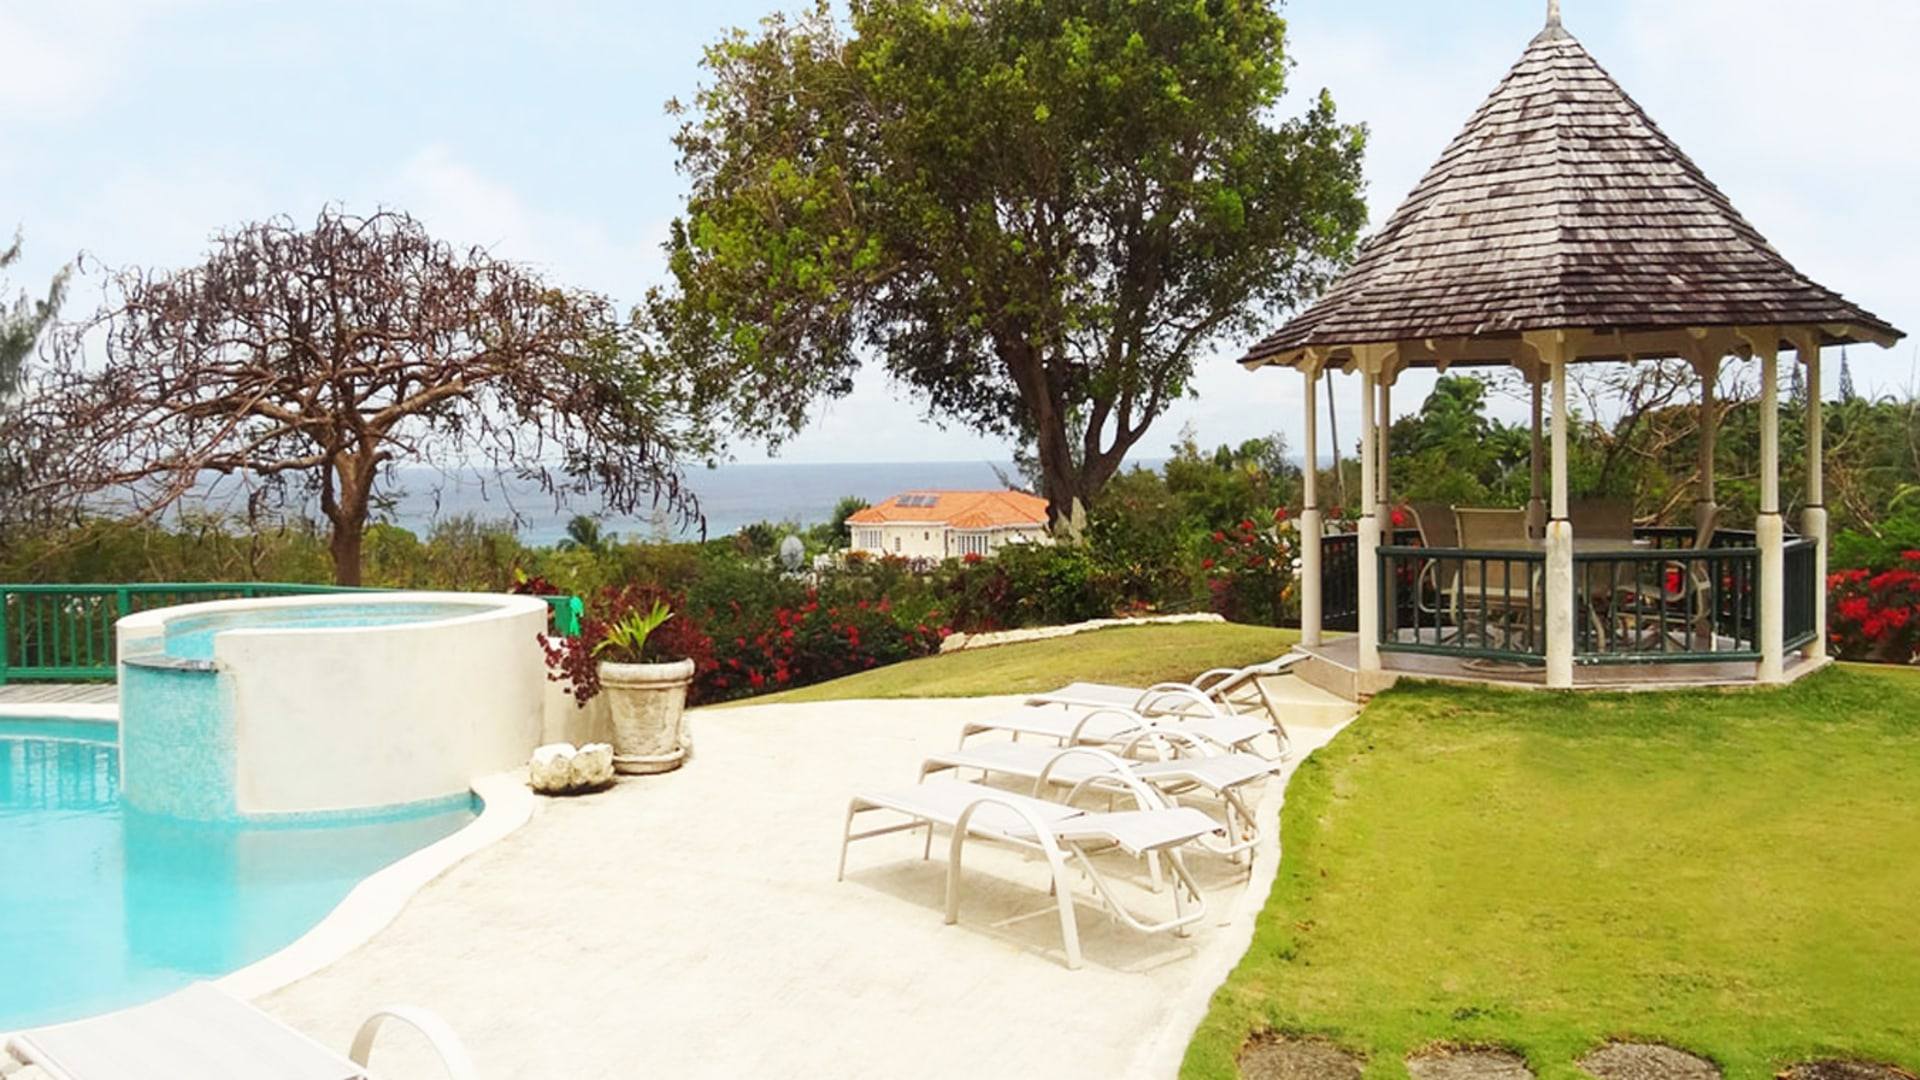 Altamira - House - Property for Sale in Barbados - Terra Luxury